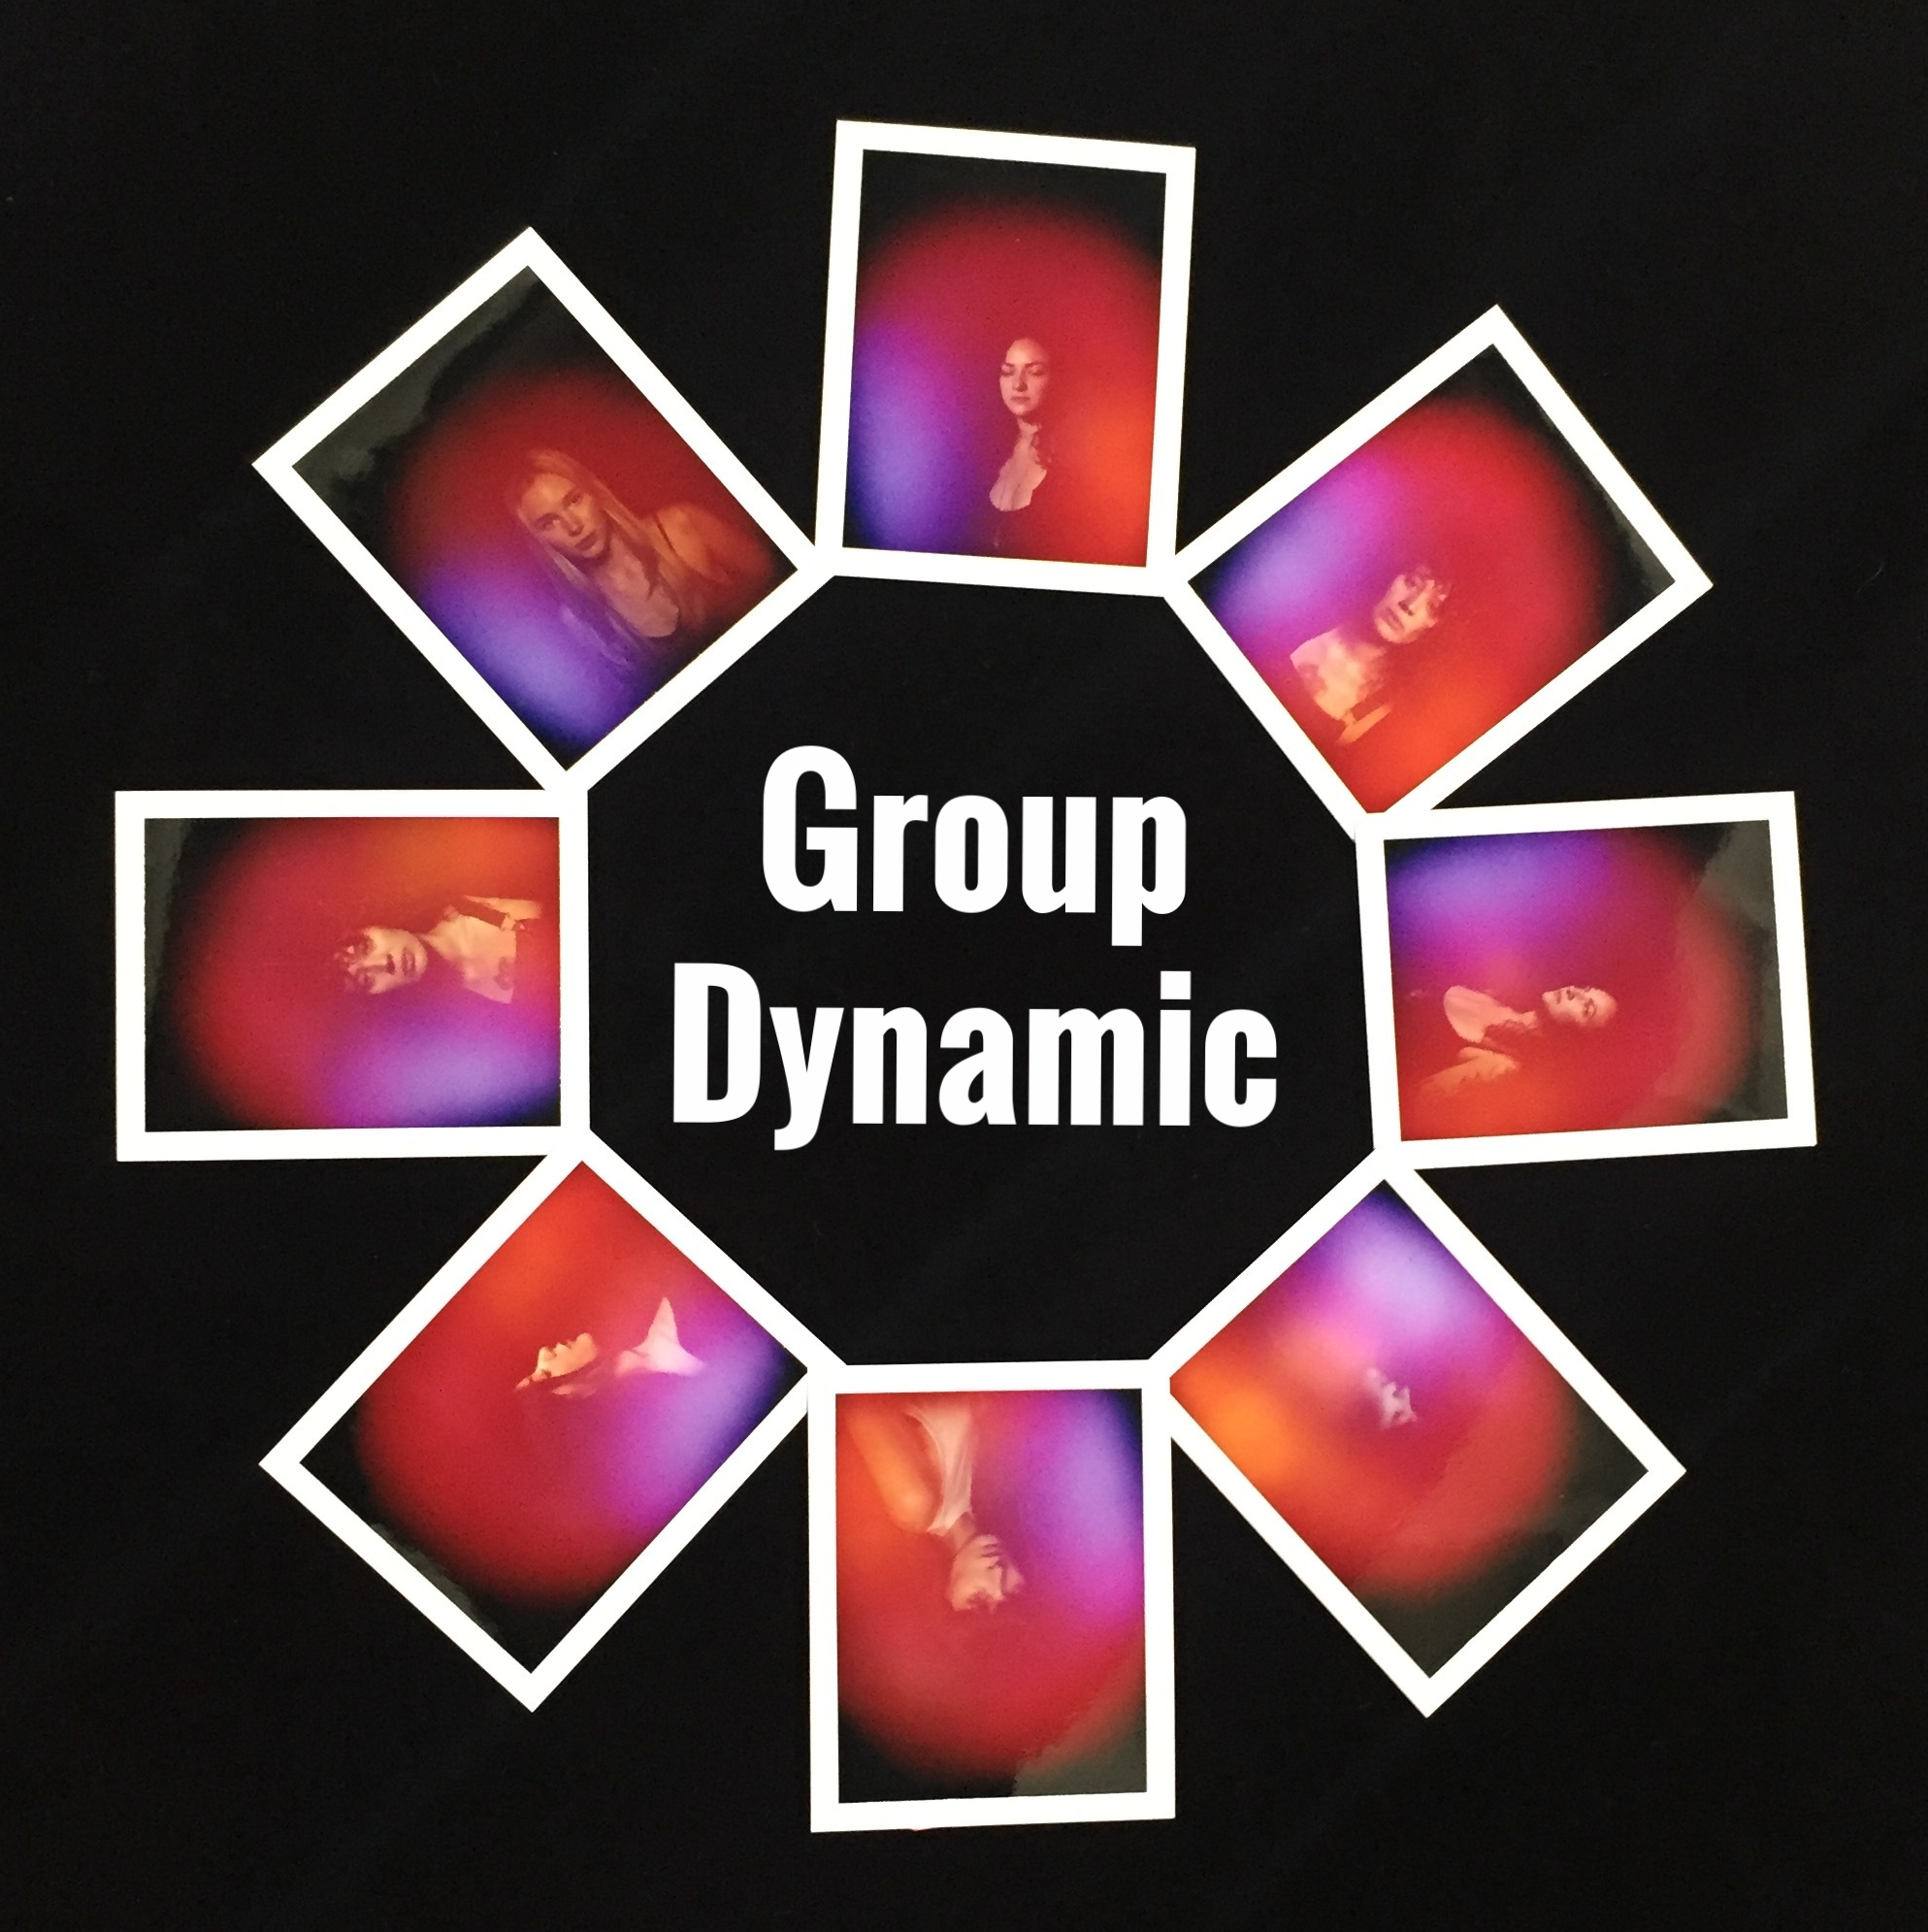 It's like a metaphysical Myers-Briggs Test: a tangible insight into the patchwork of personality orbiting our everyday. Radiant Human's Group Dynamic is a sort of extrasensory temperature read for any kind of collective body - offices, organizations, and social orders of all shapes and sizes.